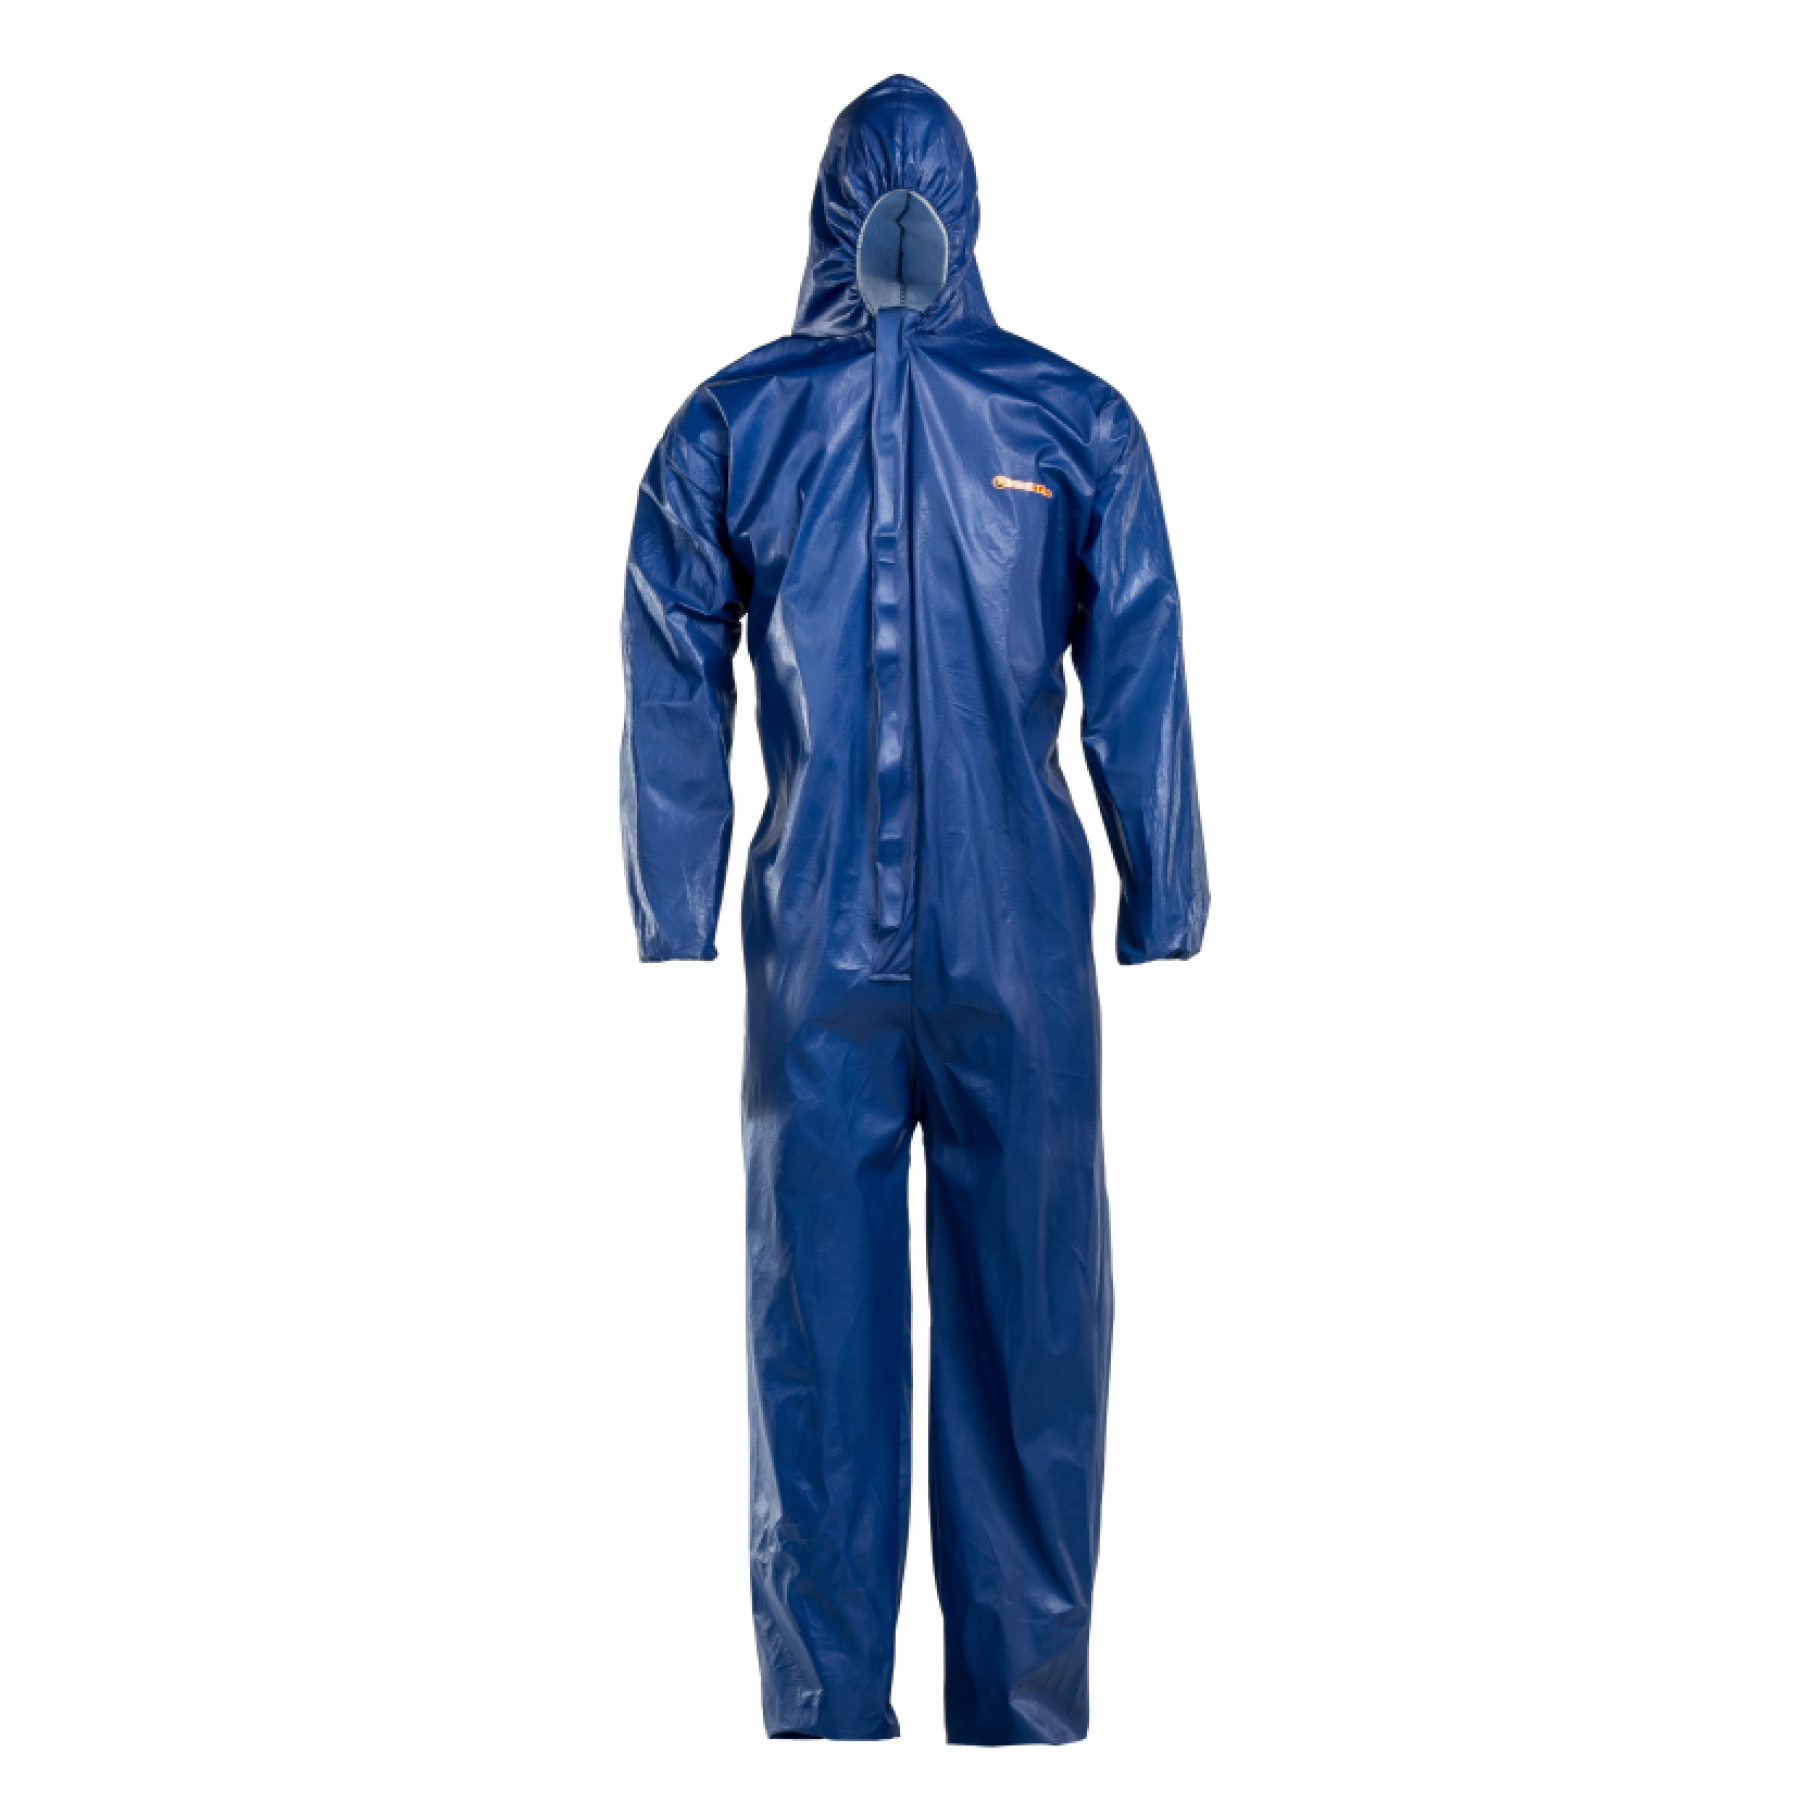 Firestar Flame Retardant Navy Blue Coverall, Size L